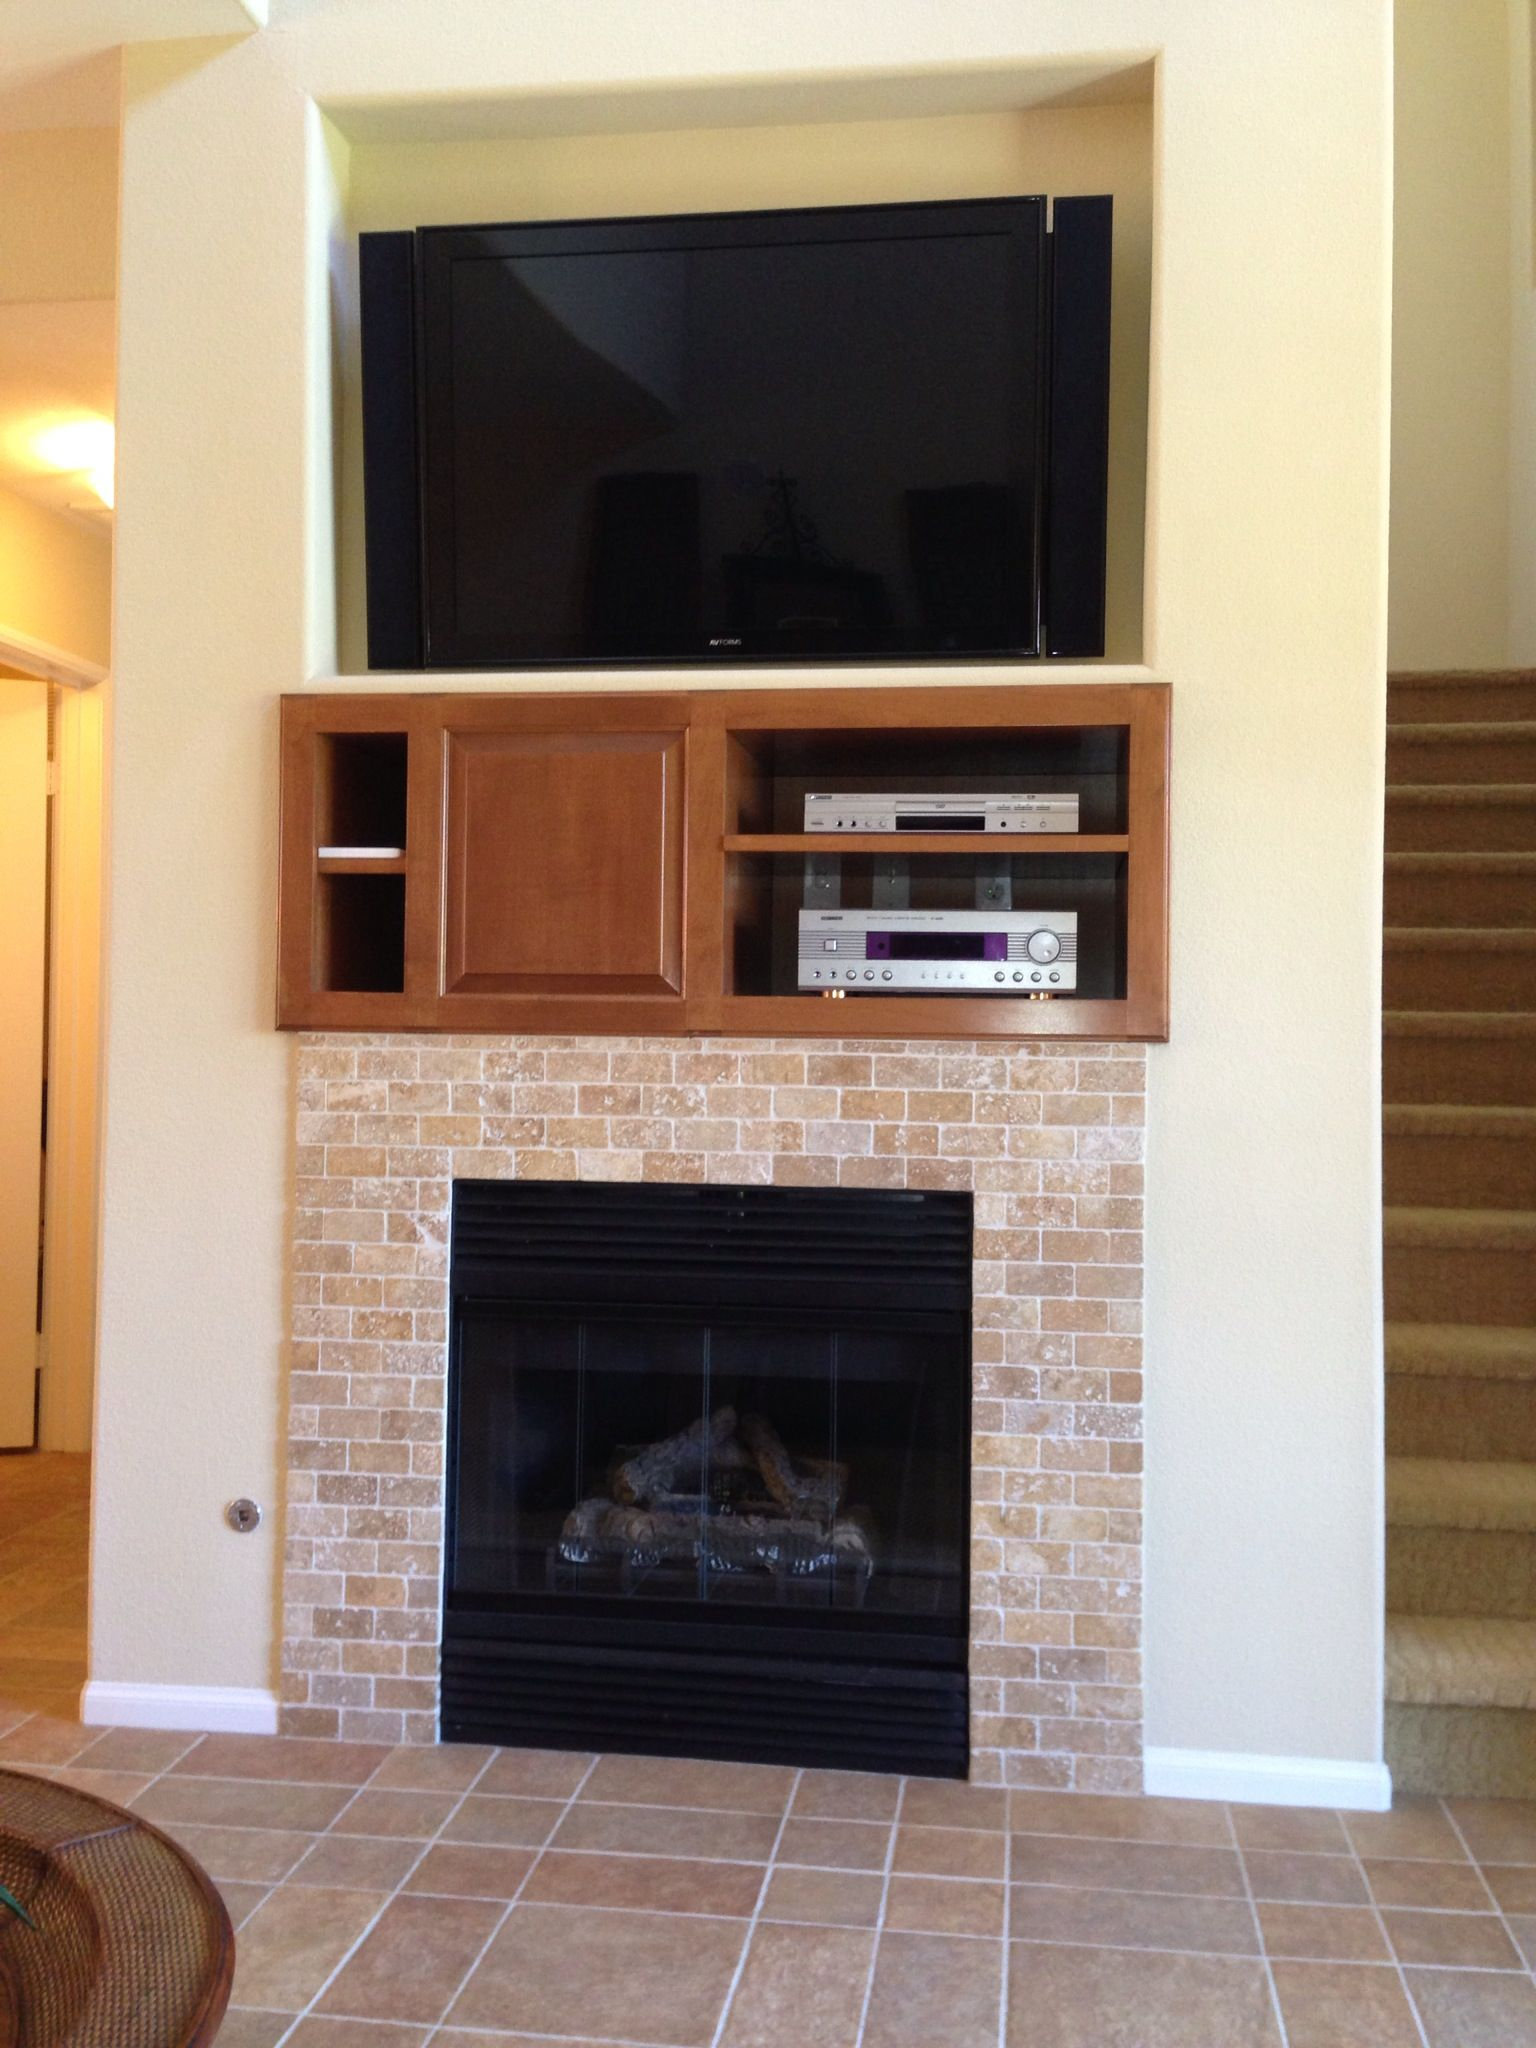 Fireplace Tv Combo Fireplace Tv Combo Home Home Home Decor Organizing Your Home